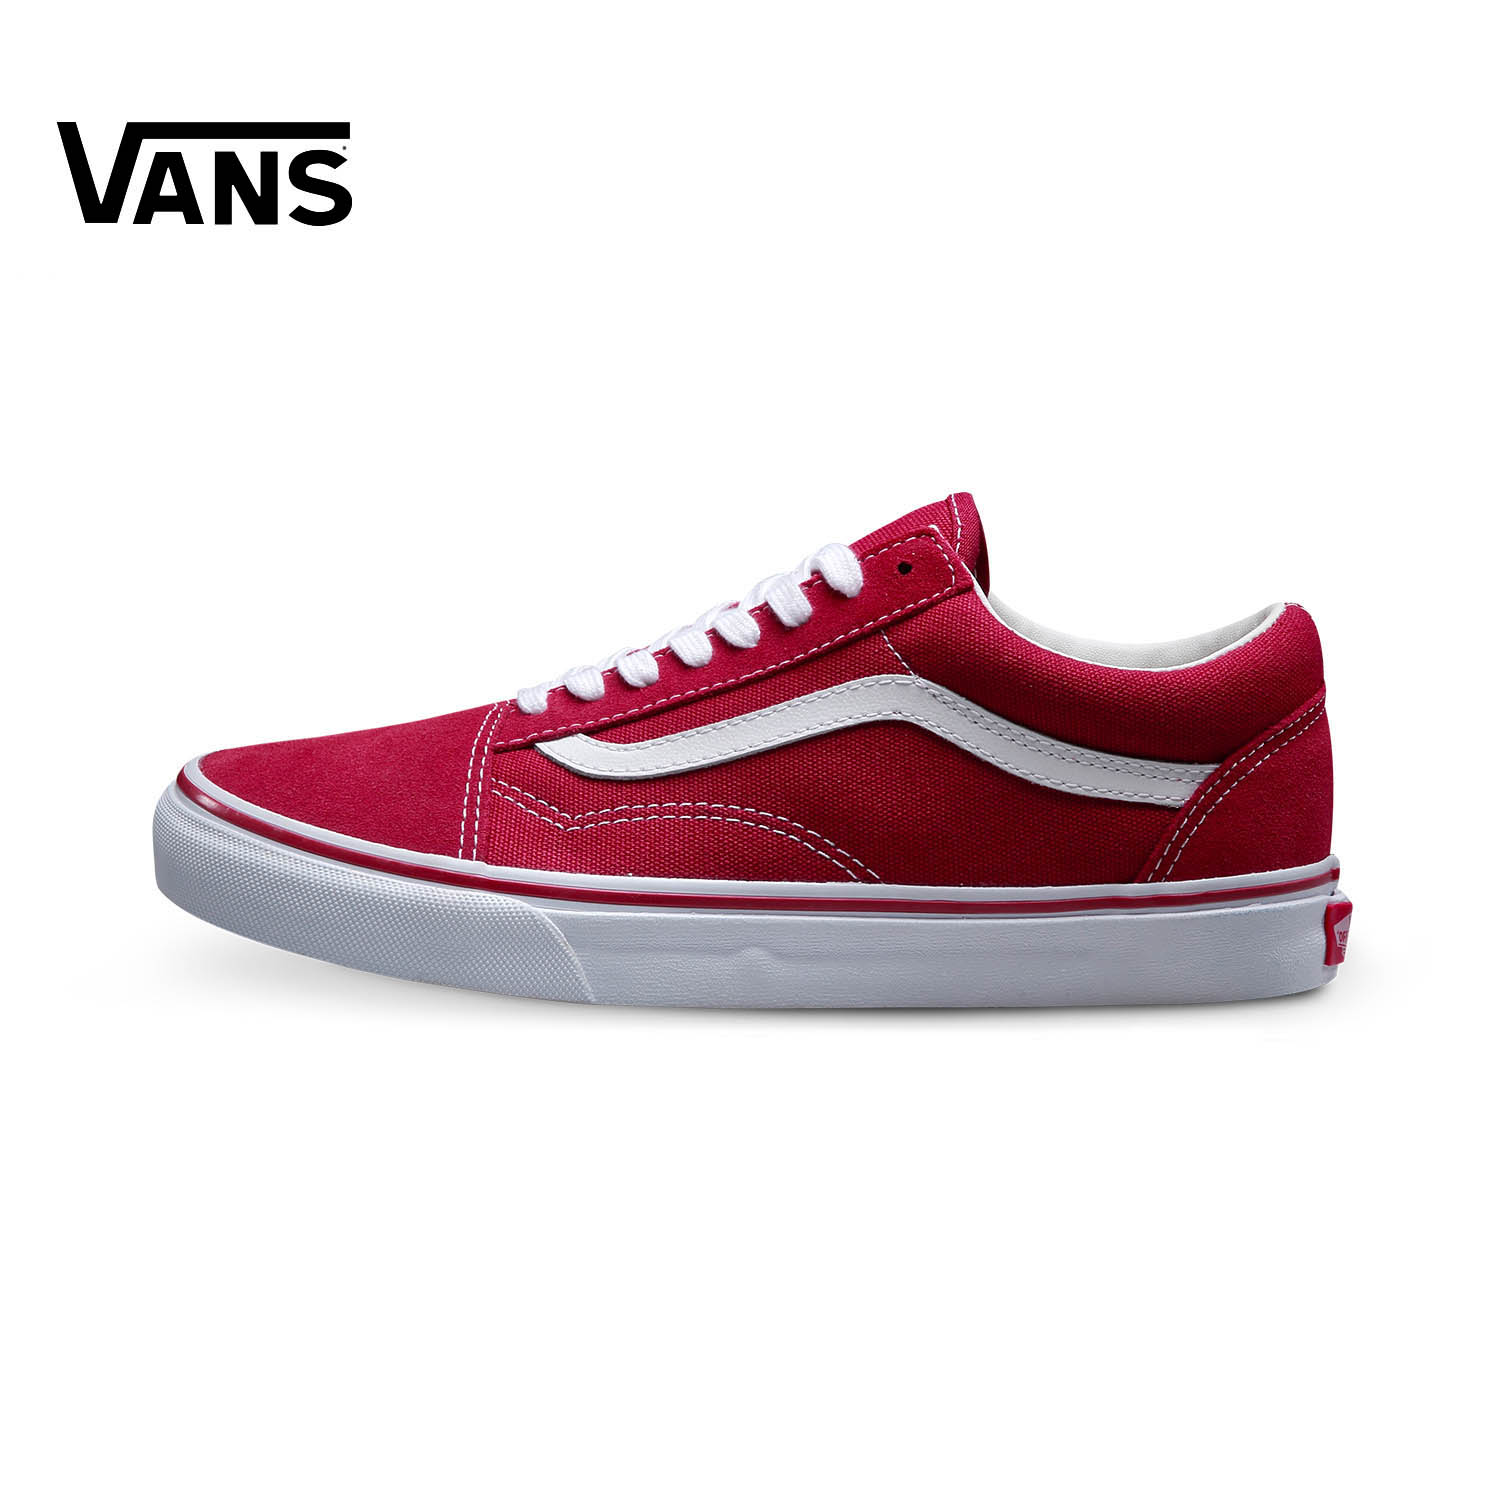 万斯儿童板鞋_vans old skool黑白_vans old skool男鞋_vans old skool蛇年_ vans old skool红色 ...